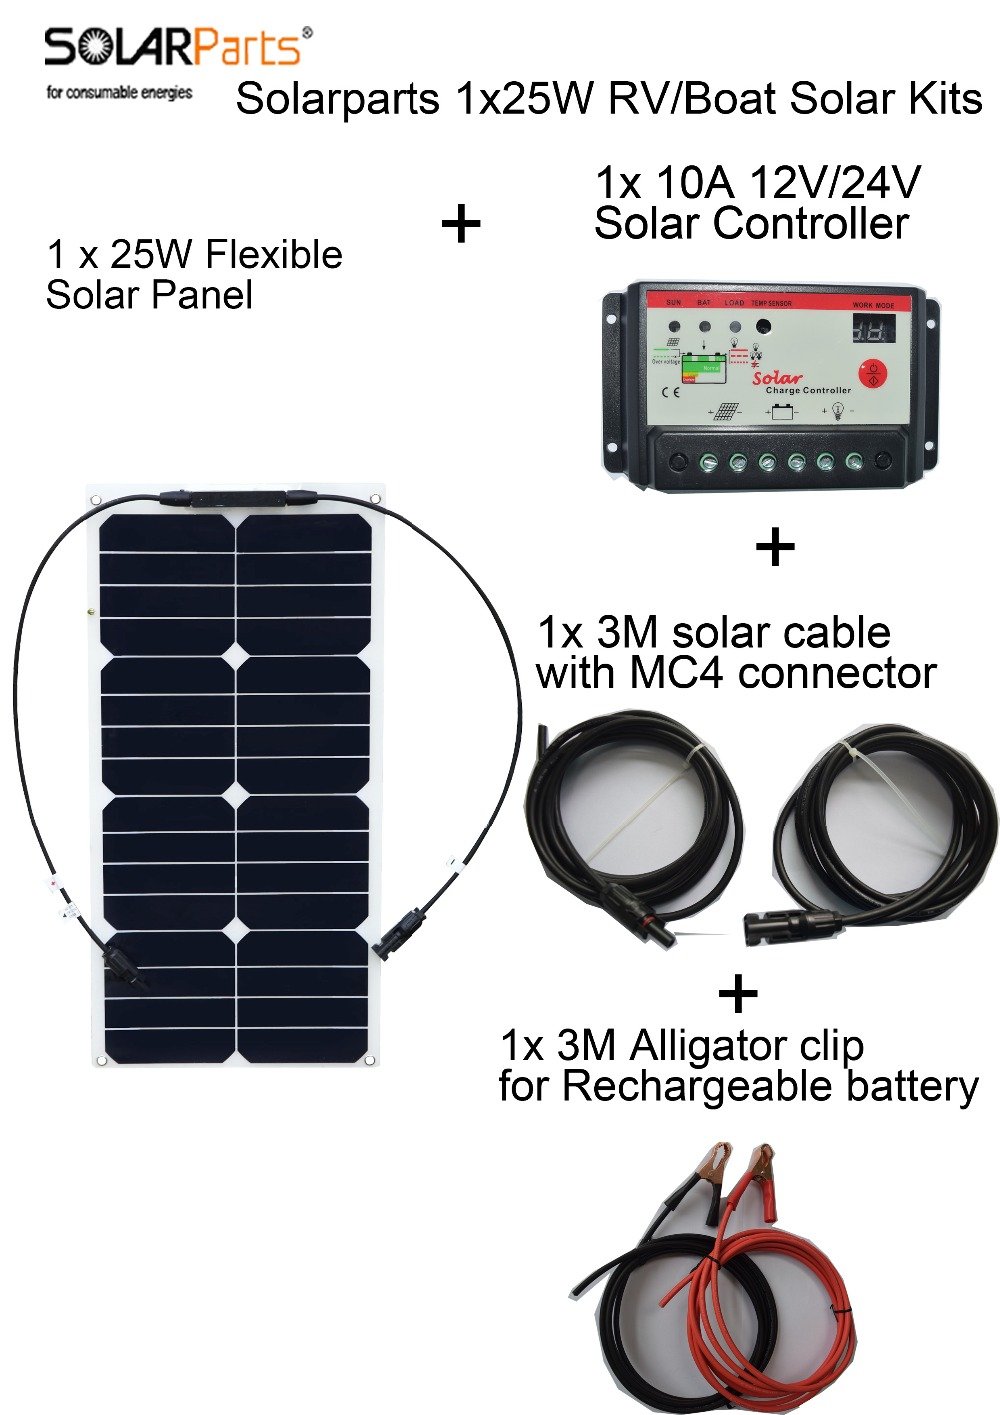 BOGUANG 25w flexible solar panel system solar cell controller cable for yacht RV light 12v battery solar energy generation sp 36 120w 12v semi flexible monocrystalline solar panel waterproof high conversion efficiency for rv boat car 1 5m cable